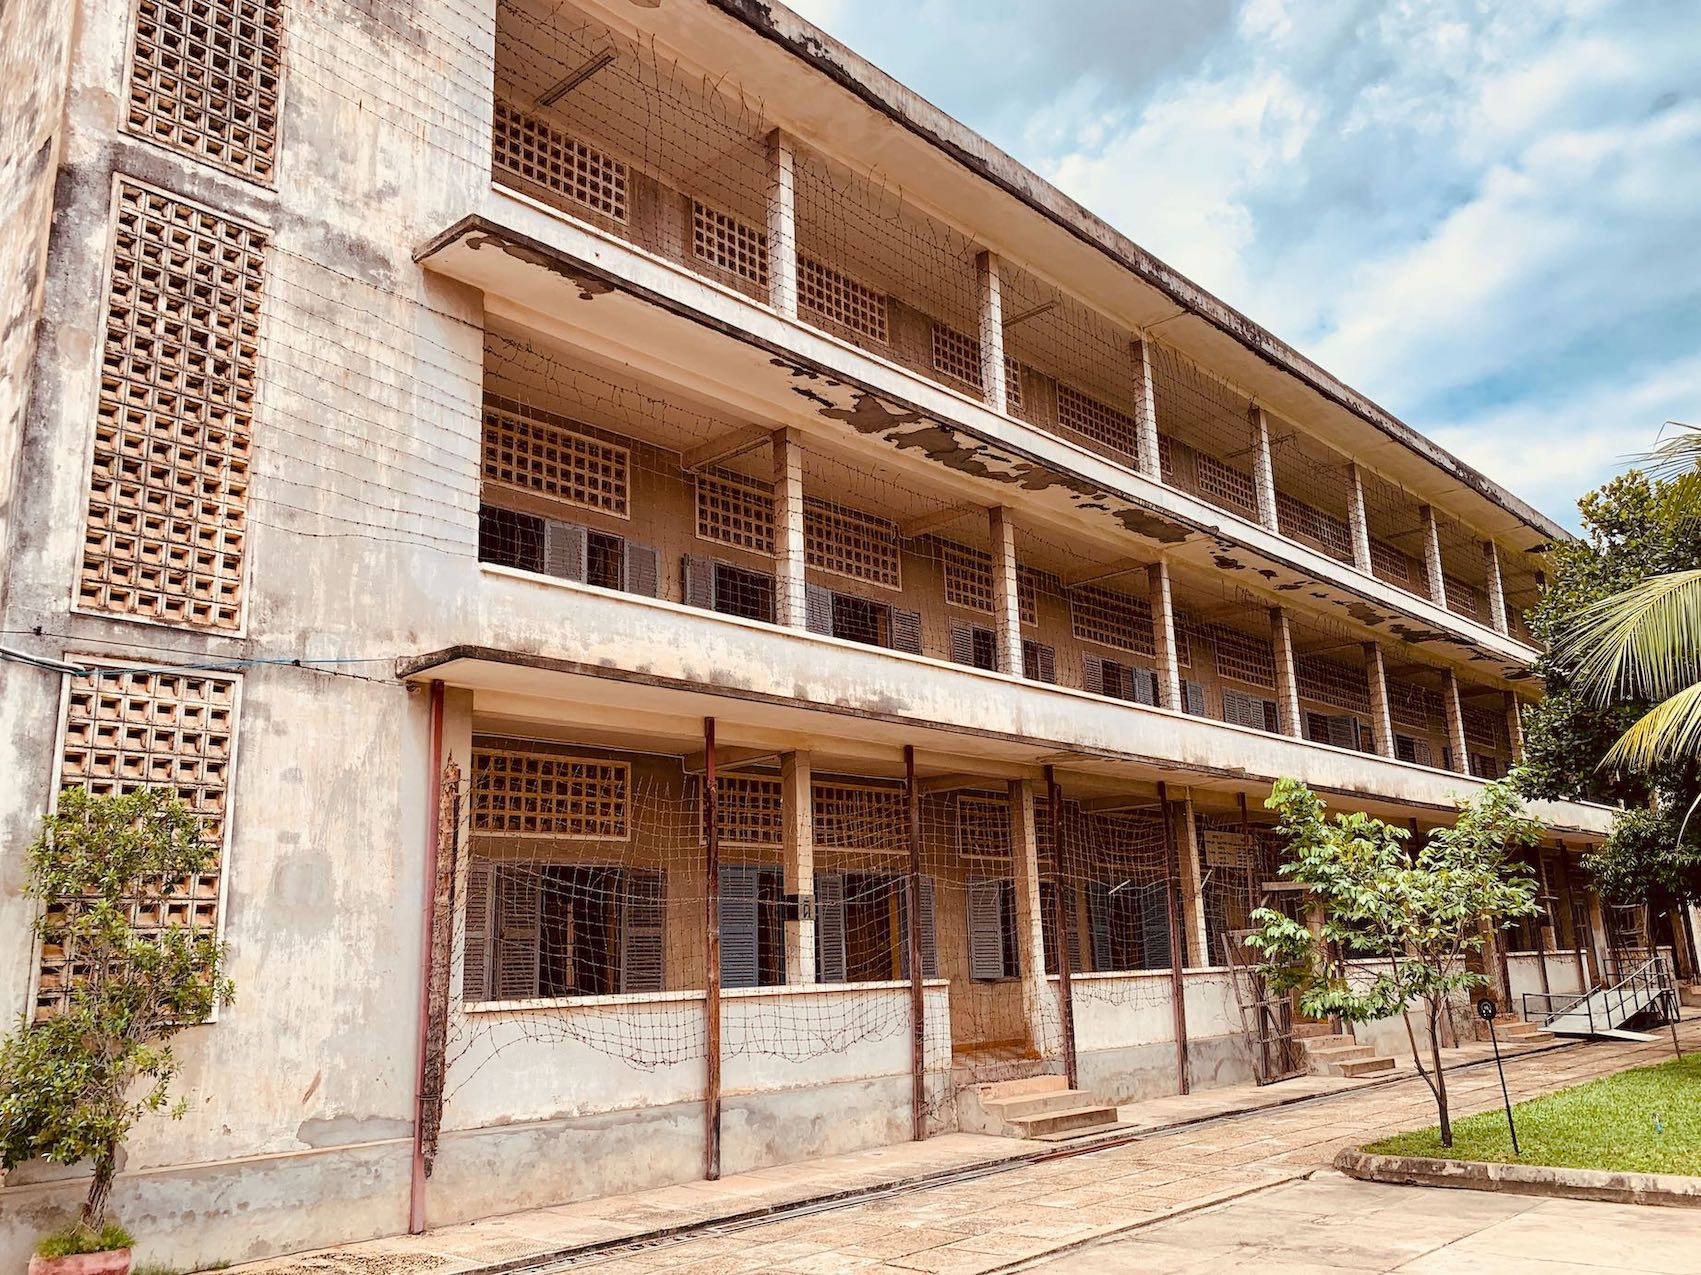 Building C Tuol Sleng Genocide Museum